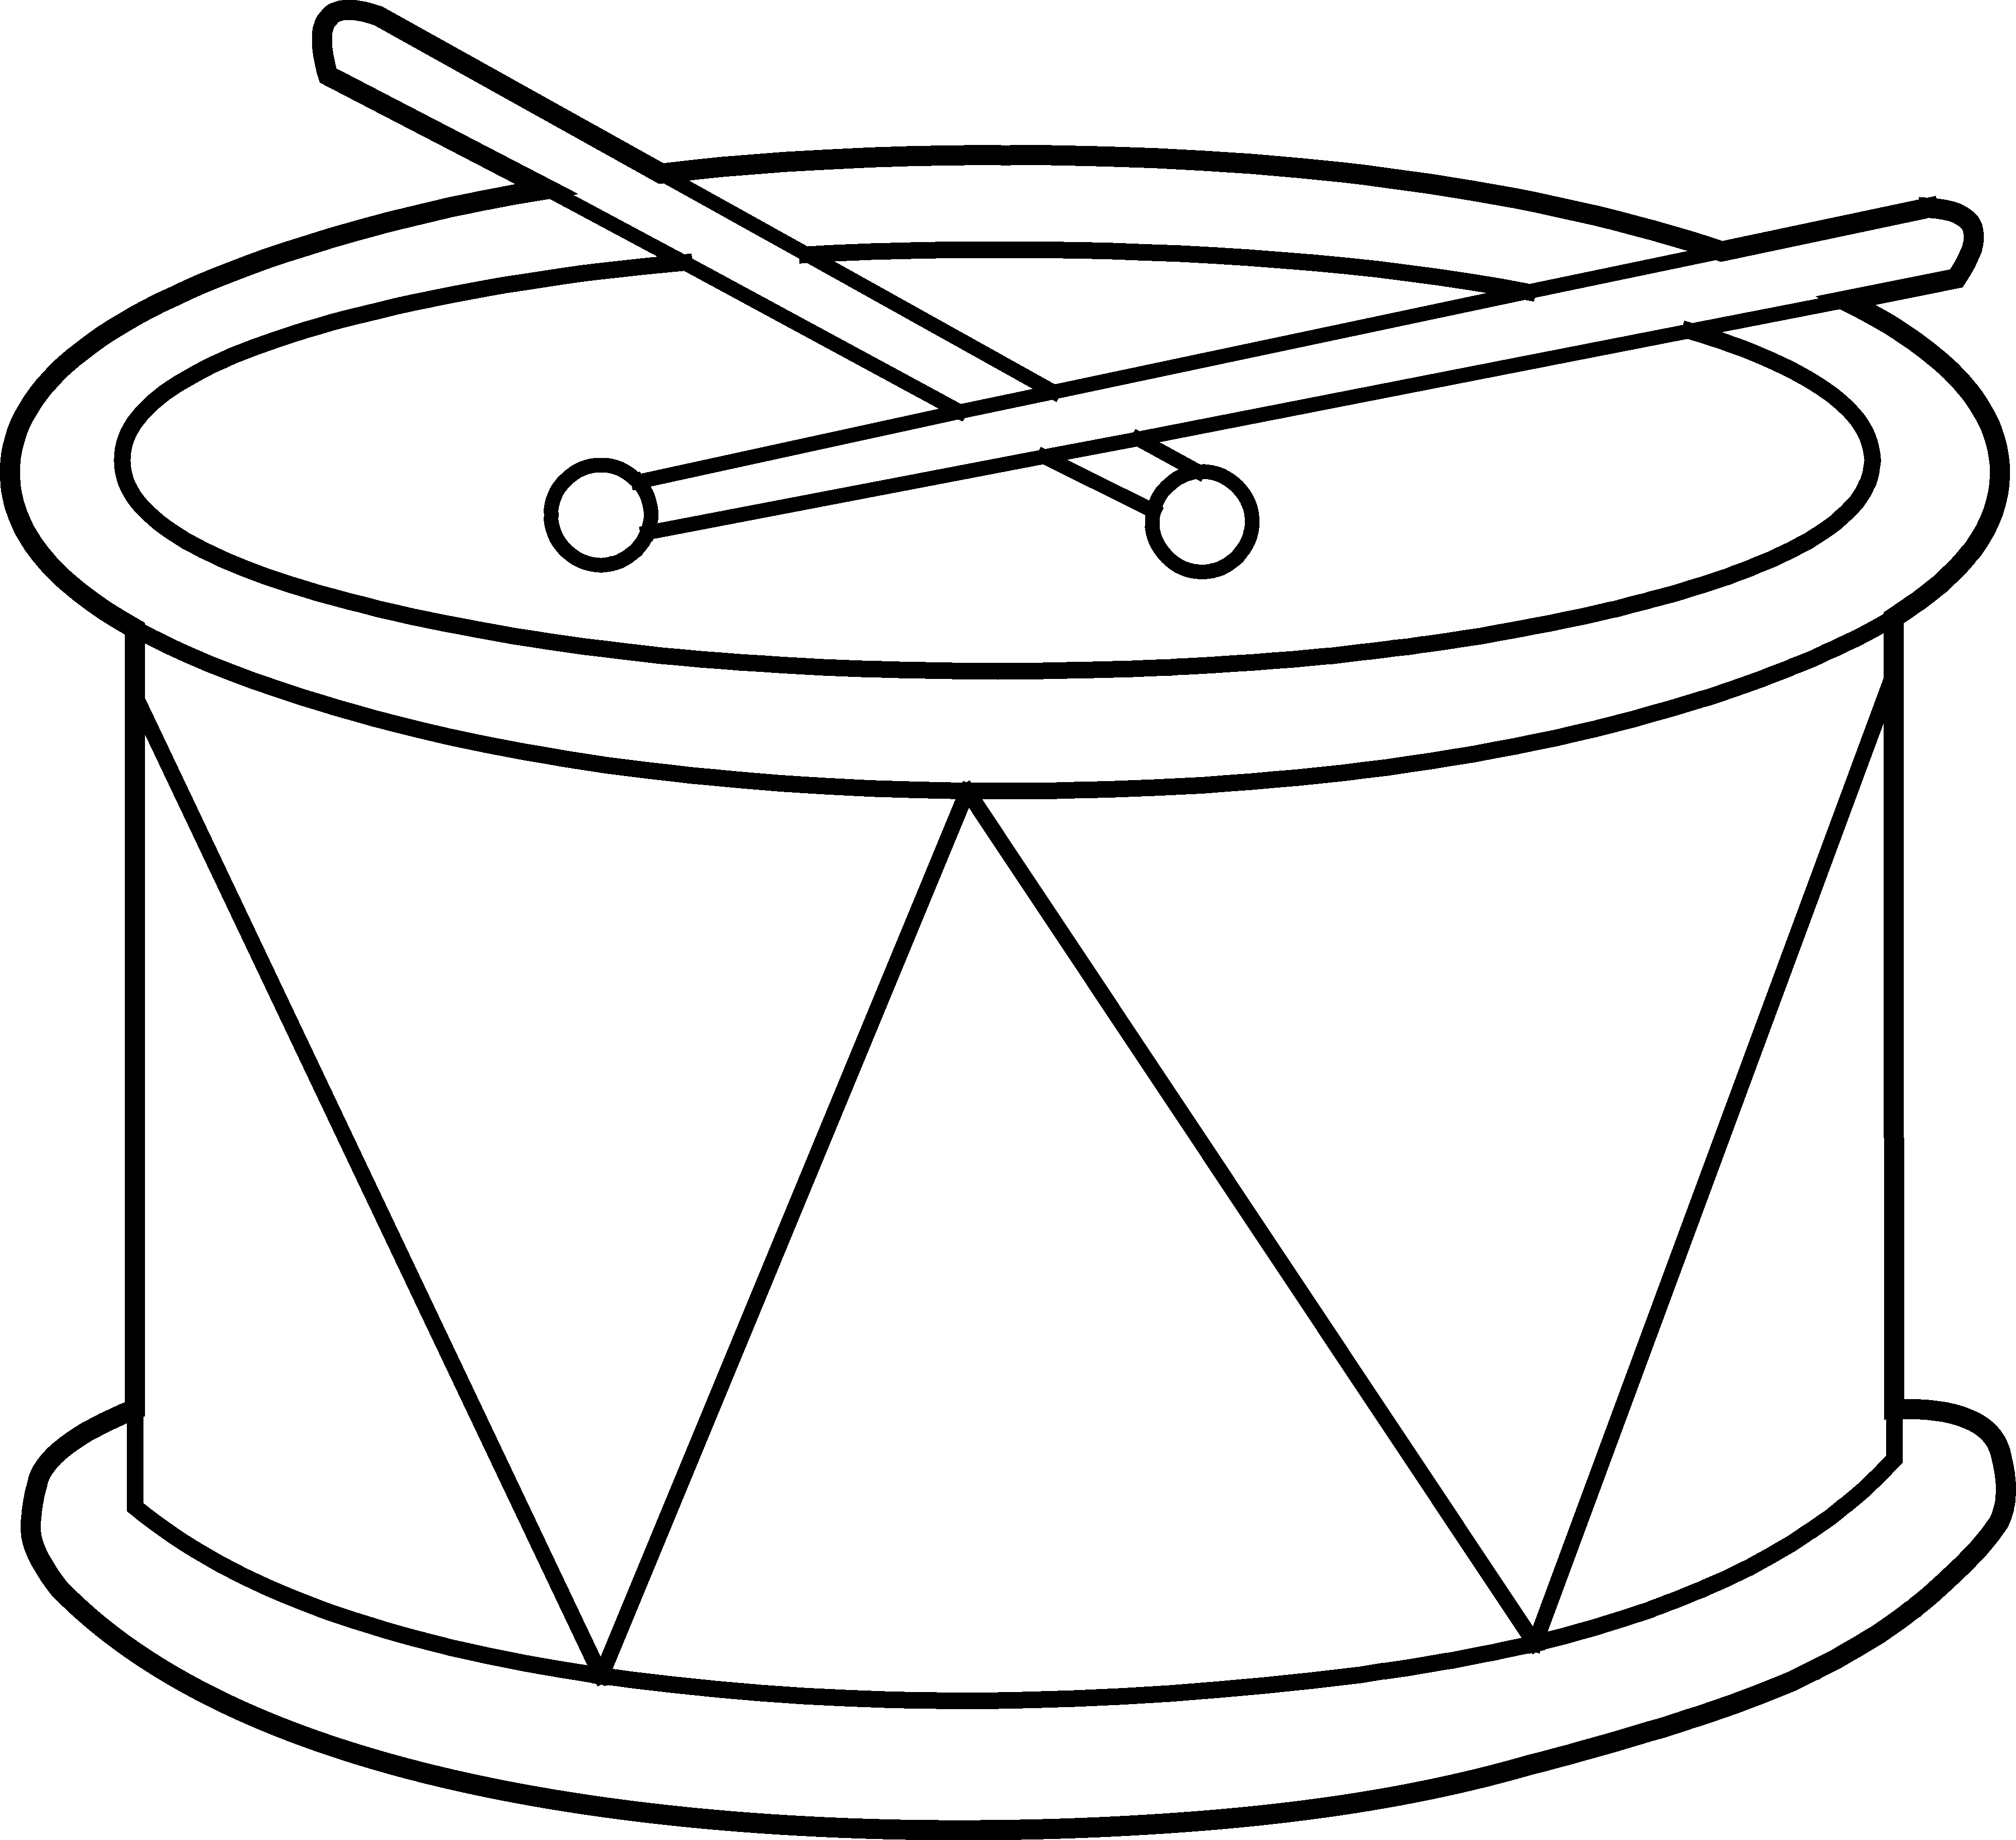 Drums clipart marching band drum. Coloring page free clip